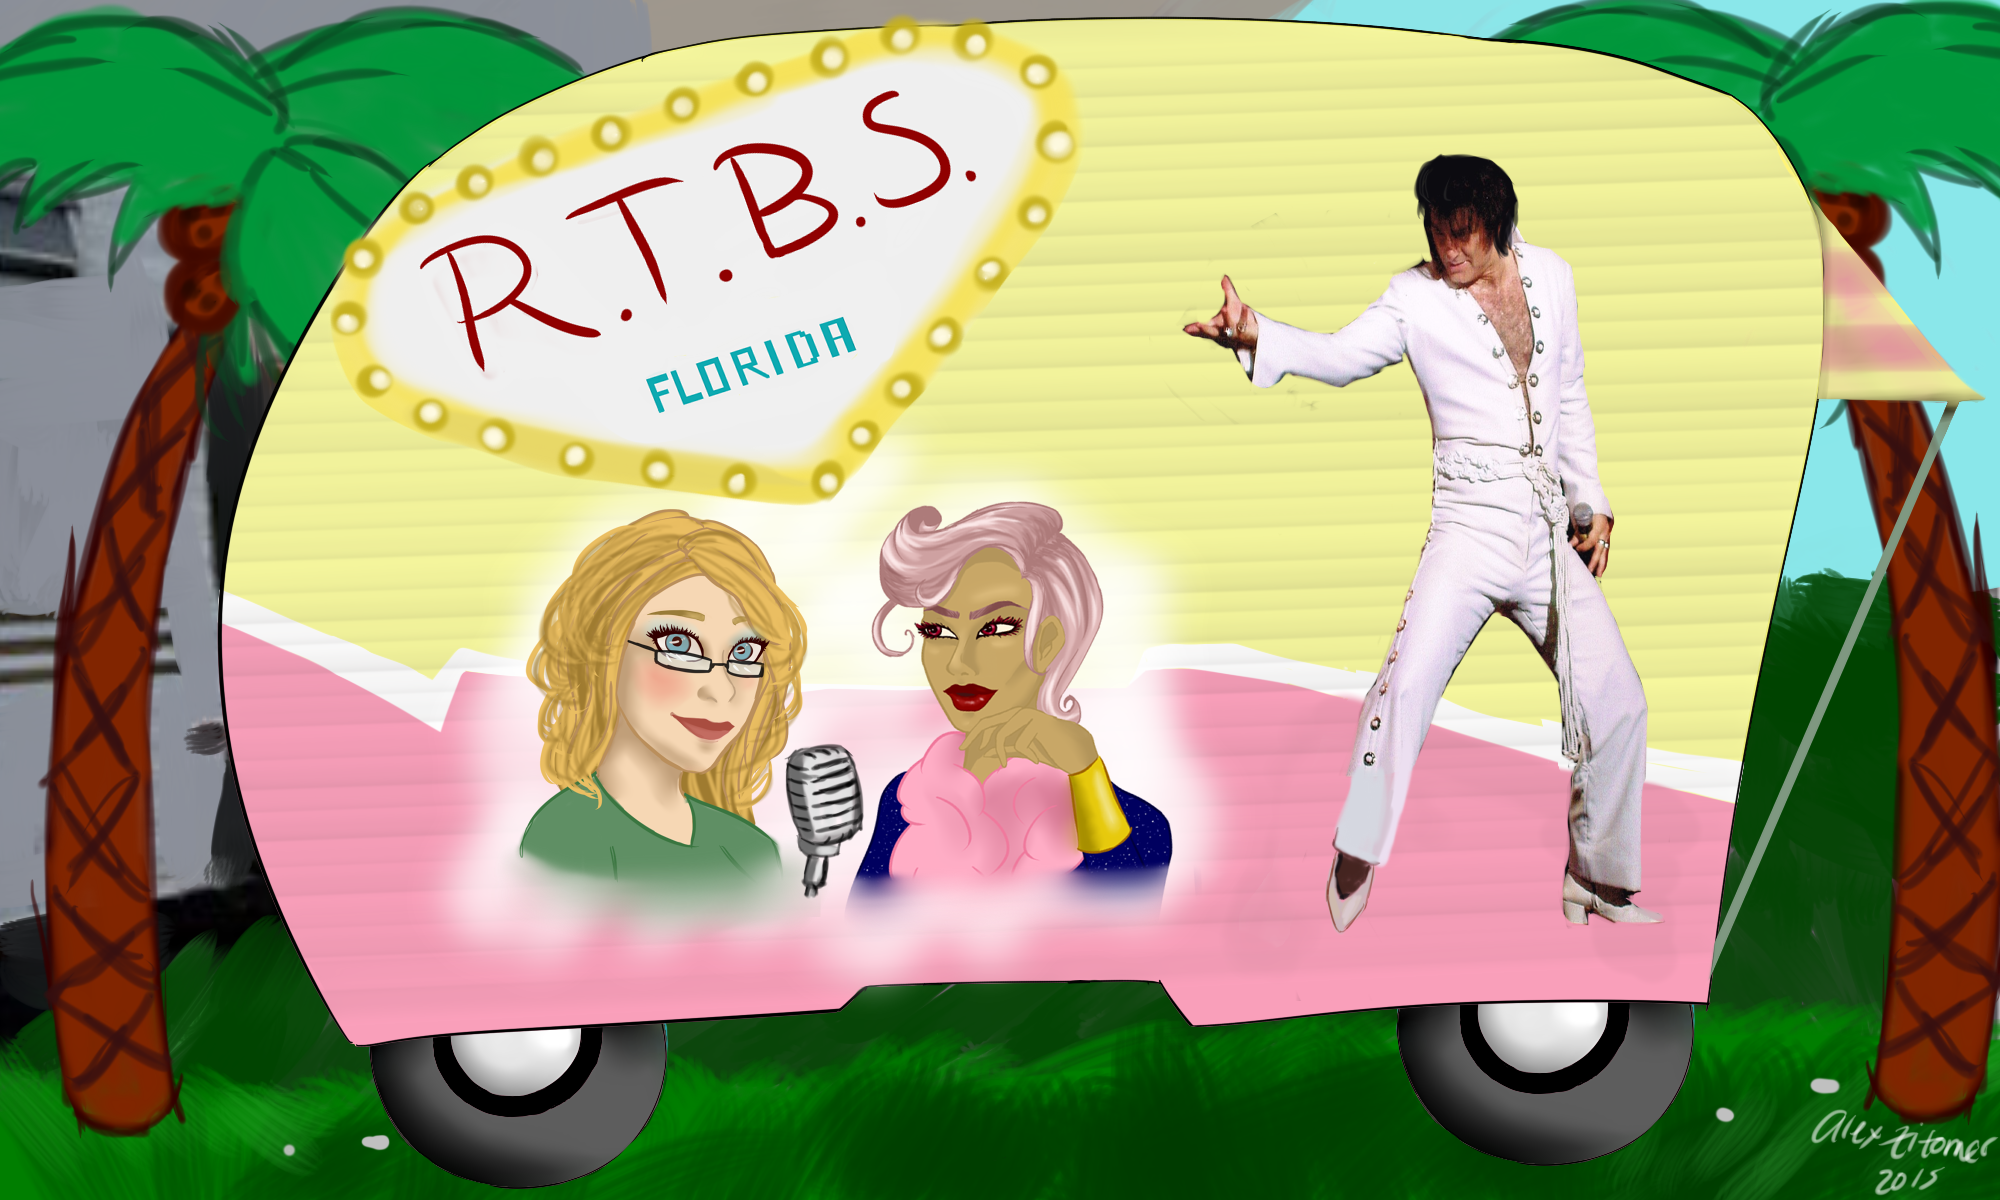 <div class='slider_caption'> <h1>Radio T.B.S.- Coming soon this Feb/March 2016! </h1> <a class='slider-readmore' href='http://attleborocommunitytheatre.com/?page_id=64'>Read More</a>   </div>